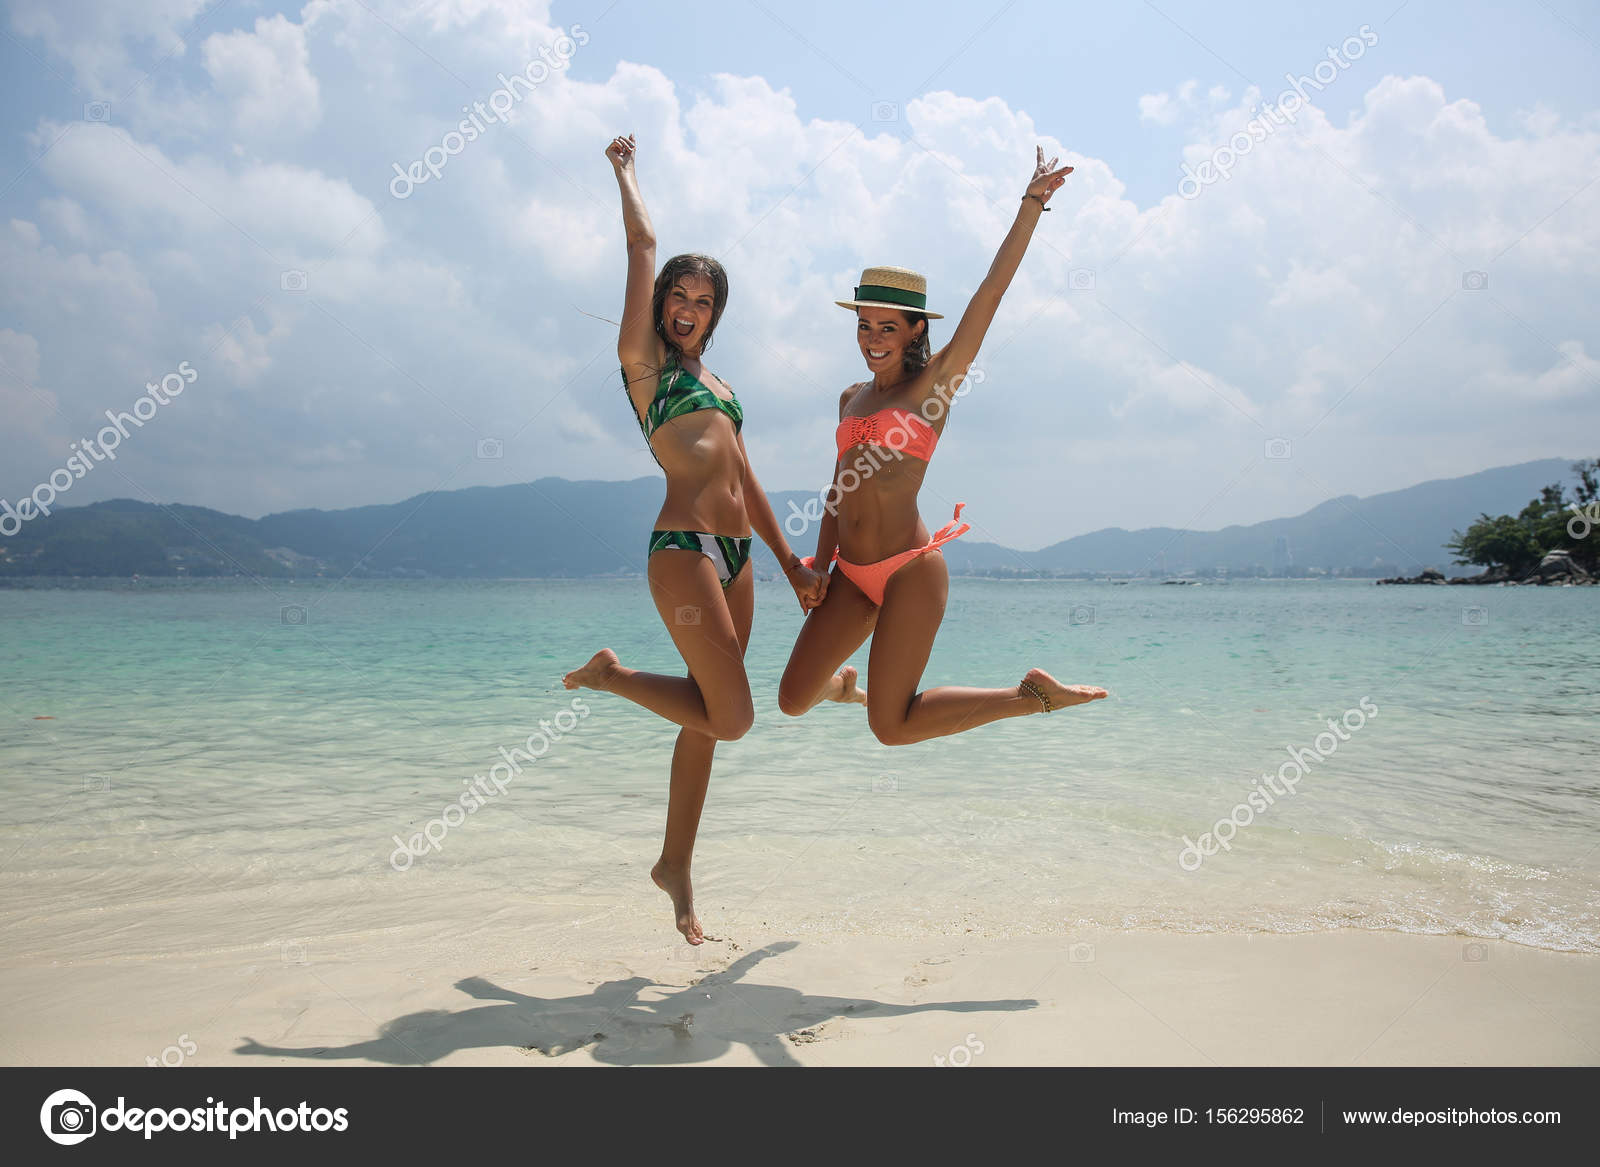 118c398b03a62 Two cool trendy hipster girls jumping on the beach enjoying vacation on a  tropical island, perfect tanned body, sexy stylish casual wear, bikinis —  Photo by ...